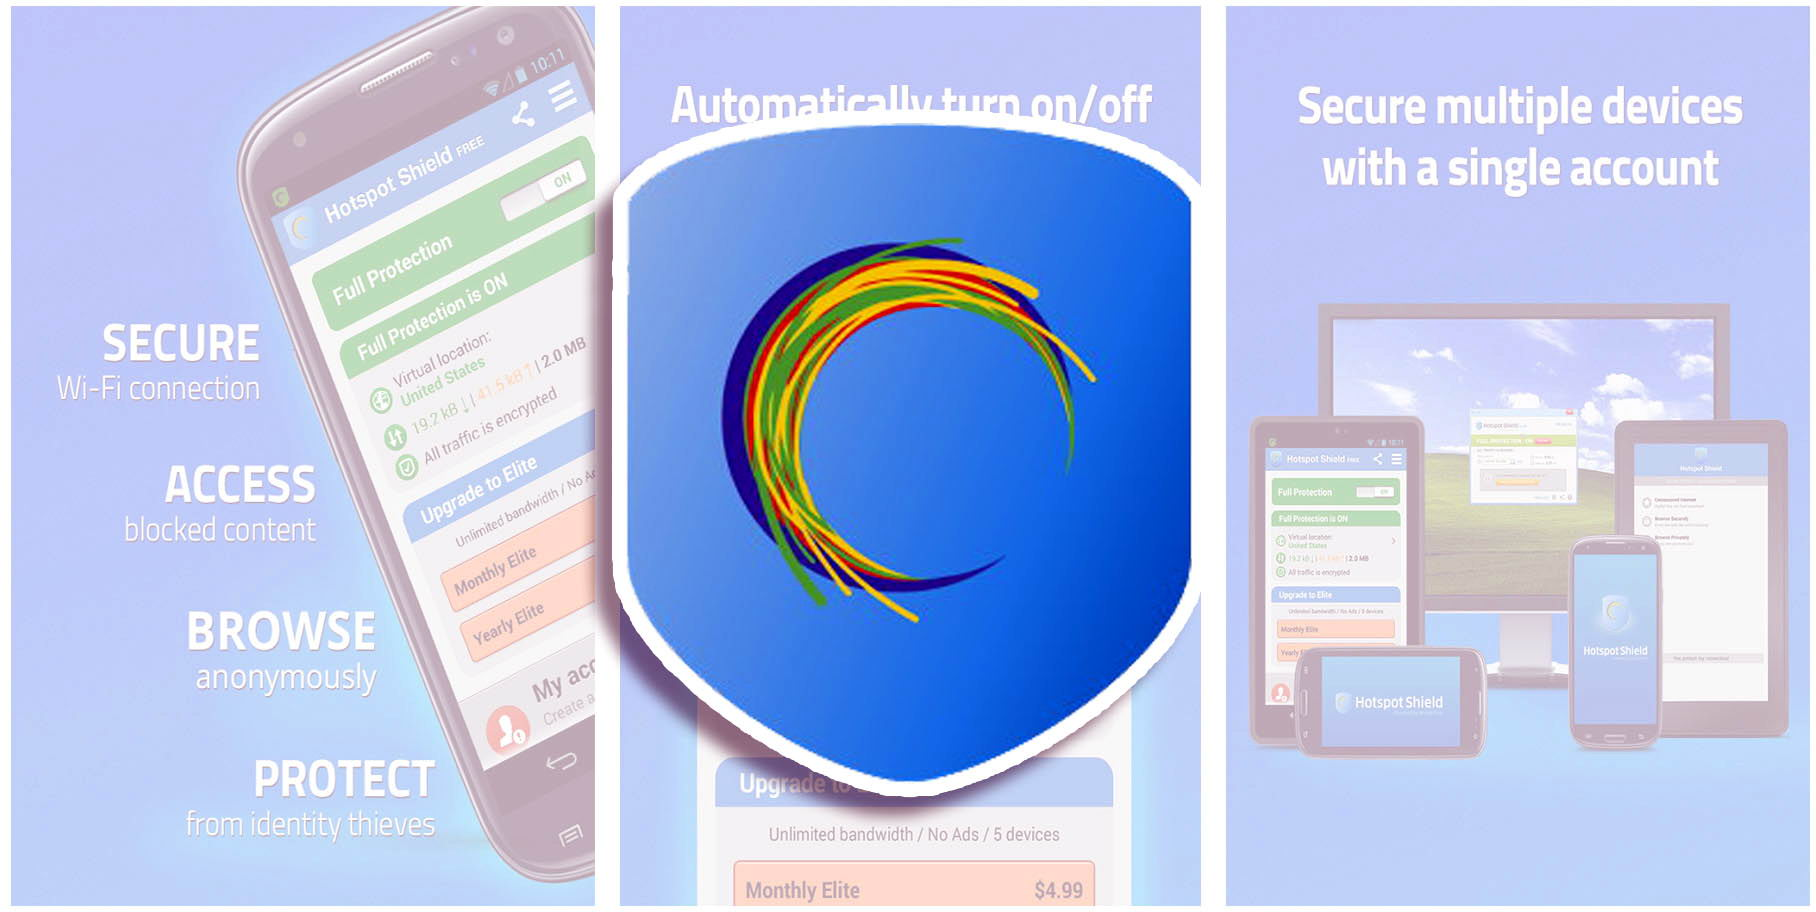 hotspot-shield-vpn-2.1.4-free-download-best-ip-changer-apk-app_1502655057368.jpg